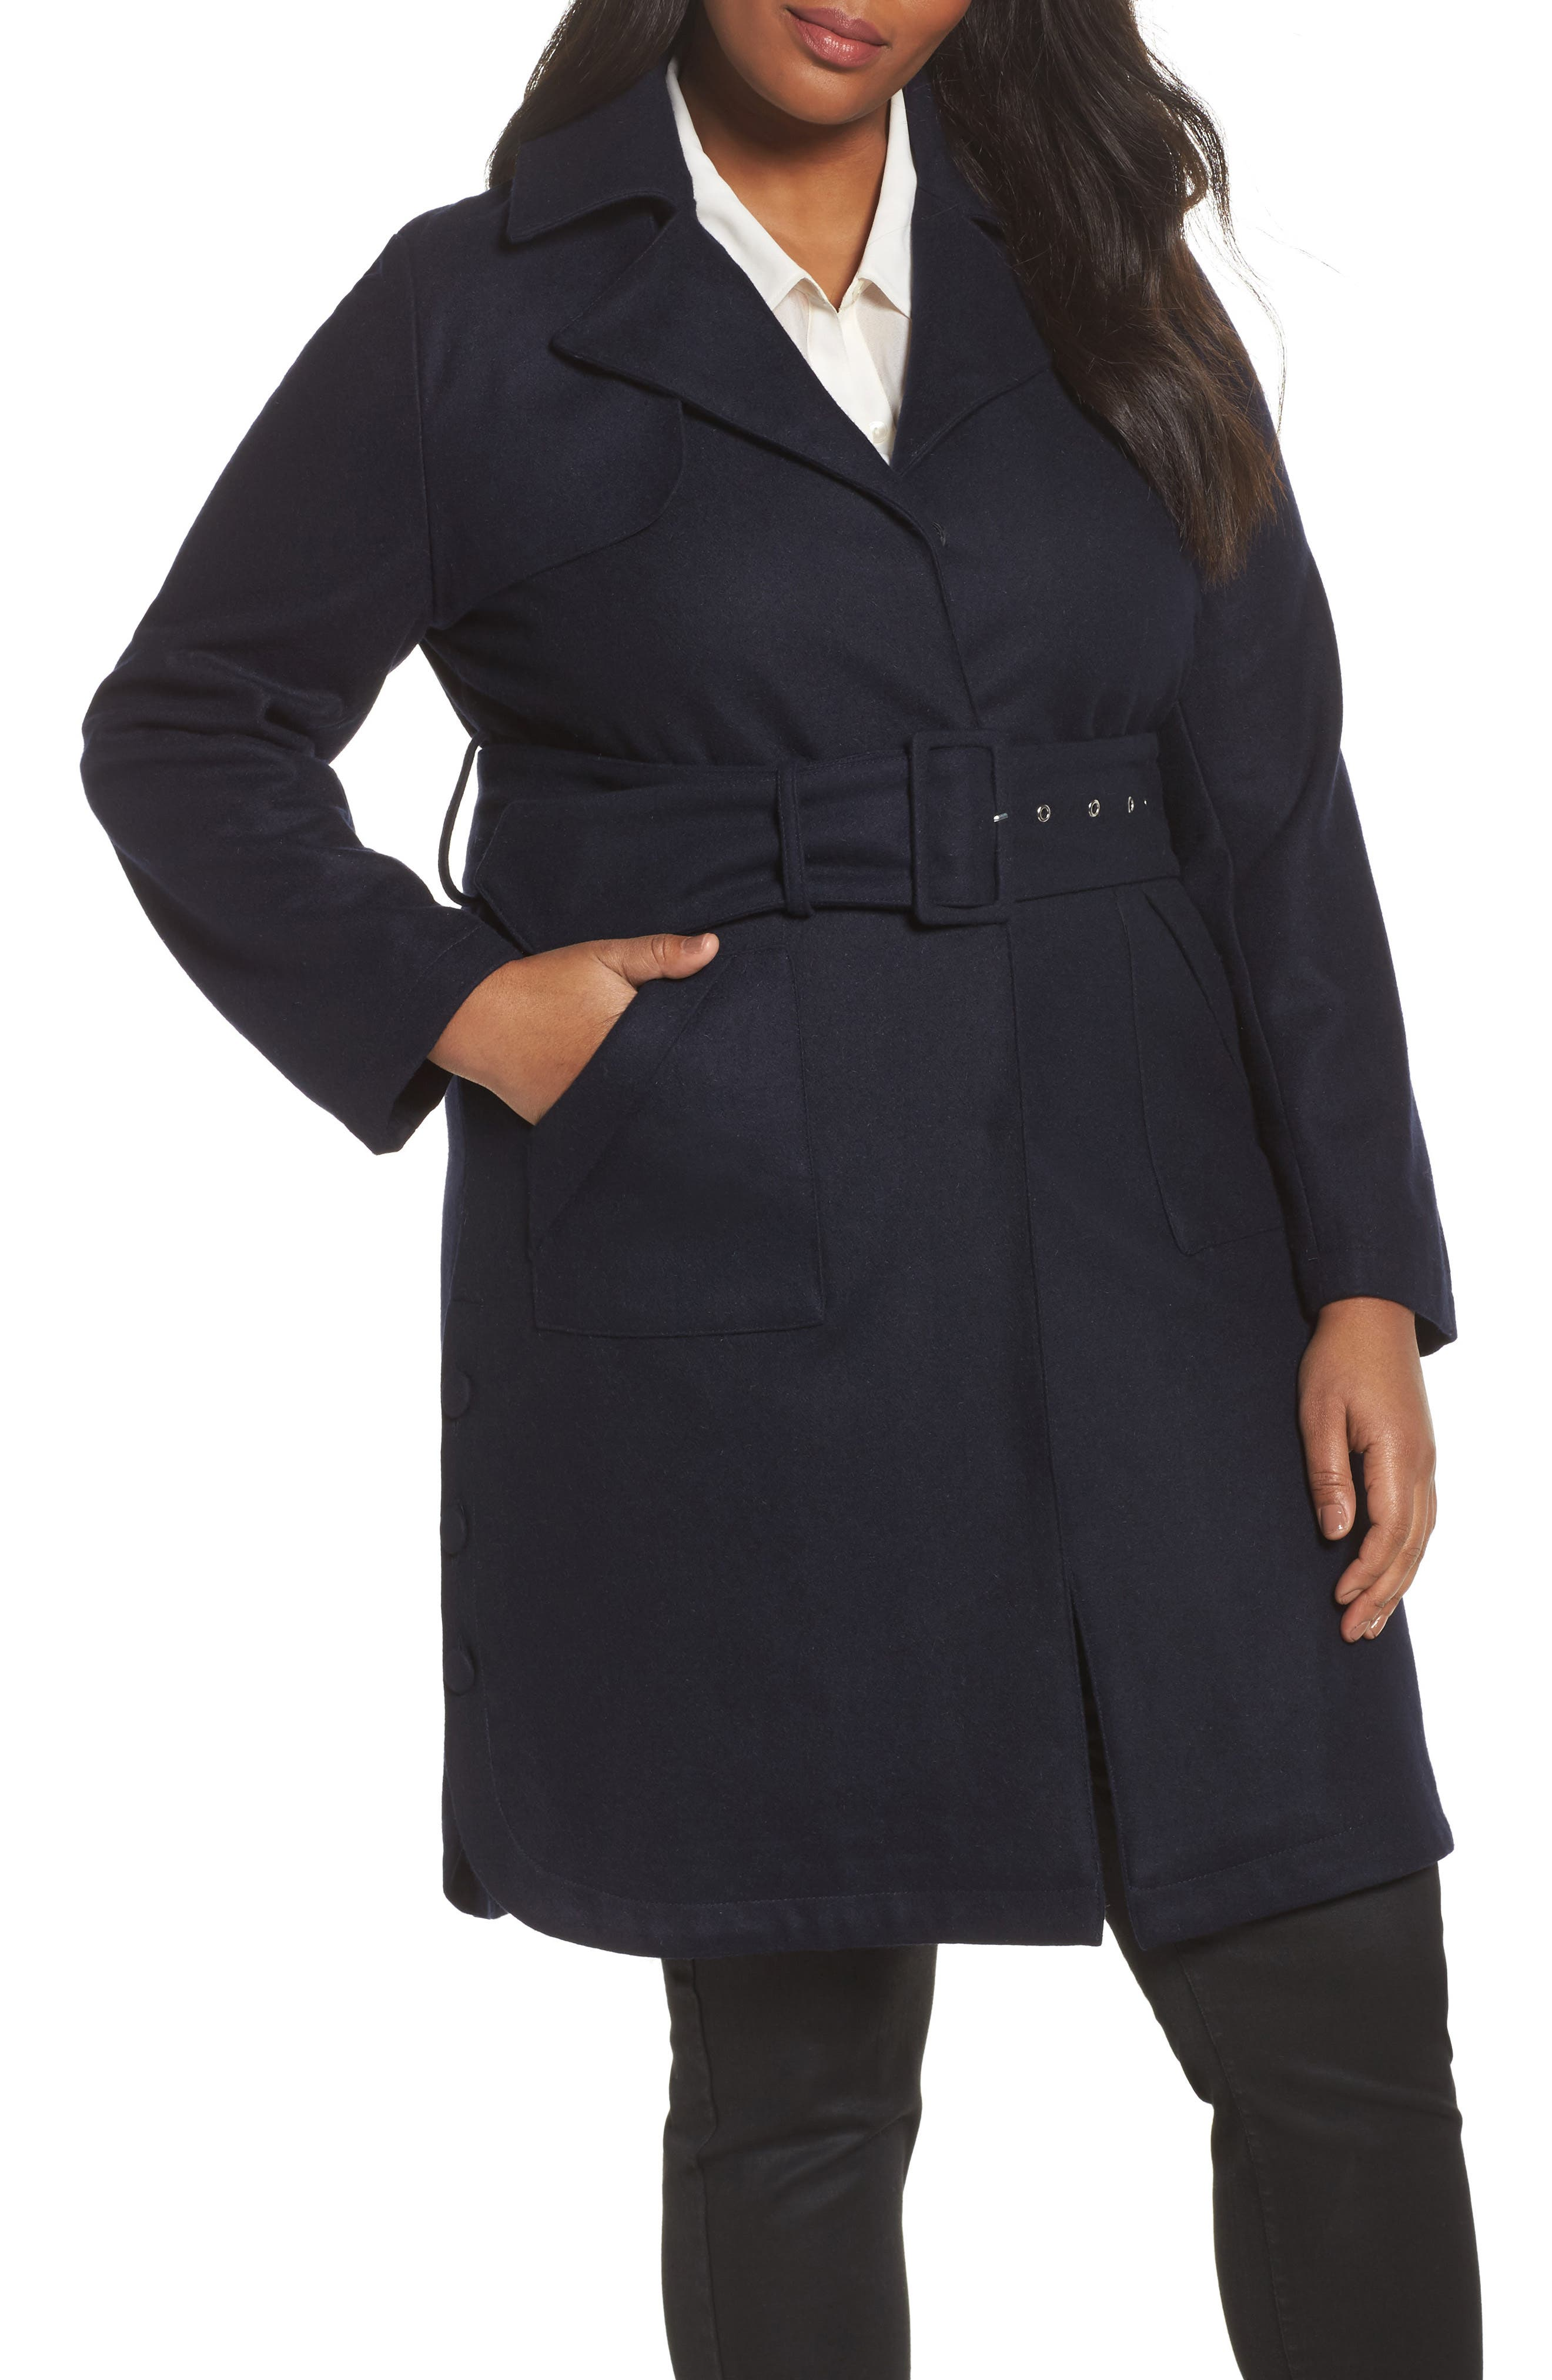 Main Image - Lost Ink Wool Blend Trench Coat (Plus Size)